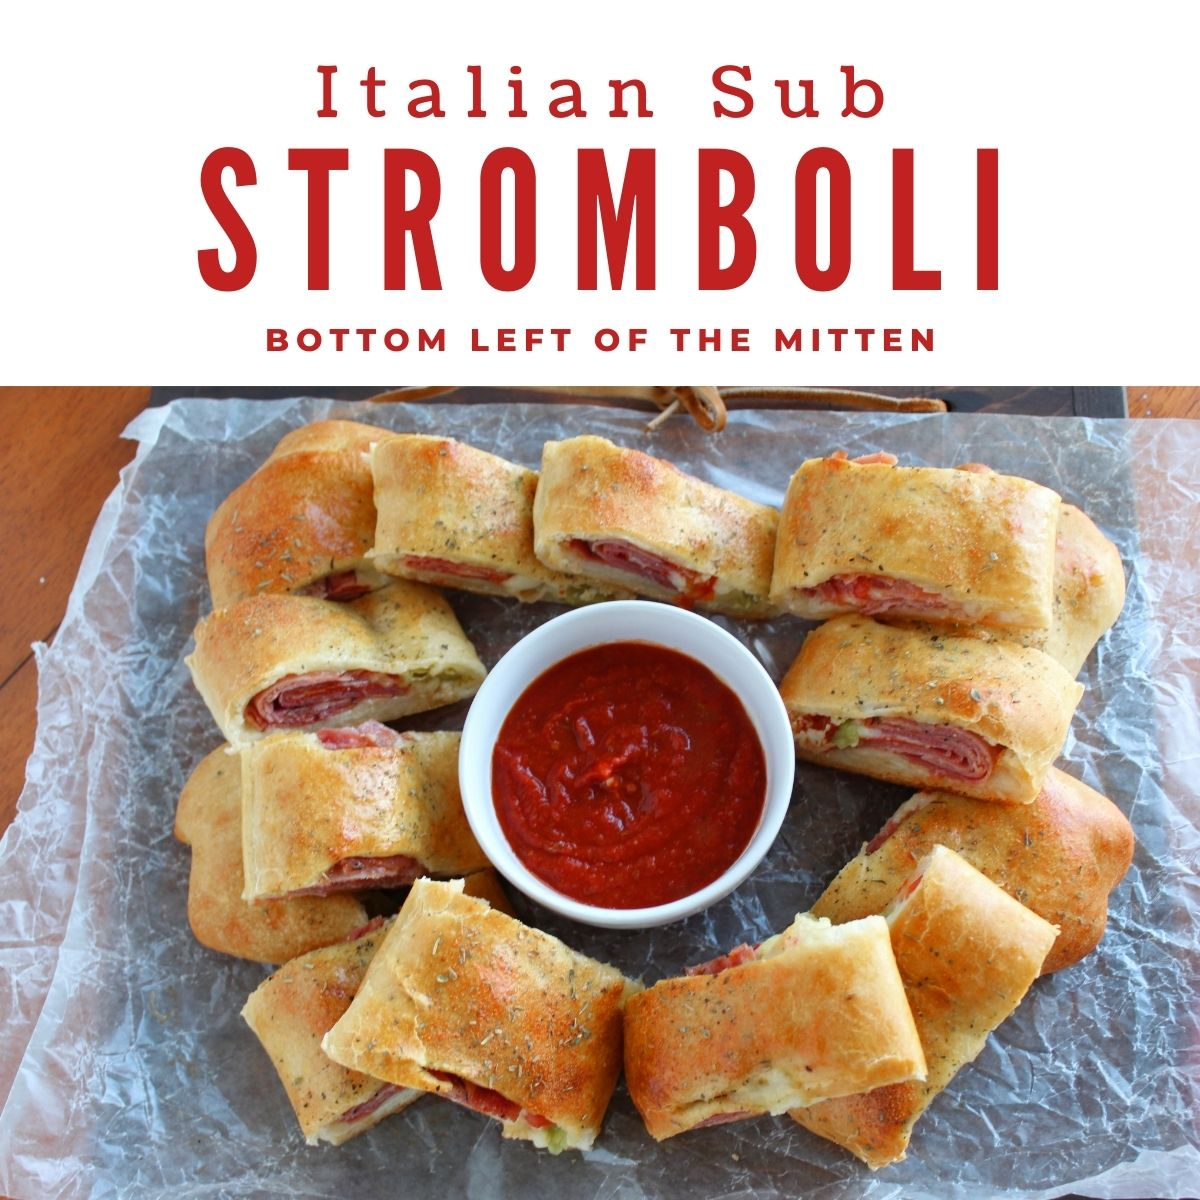 Italian Sub Stromboli ready to eat with pizza sauce for dipping with descriptive text overlay.